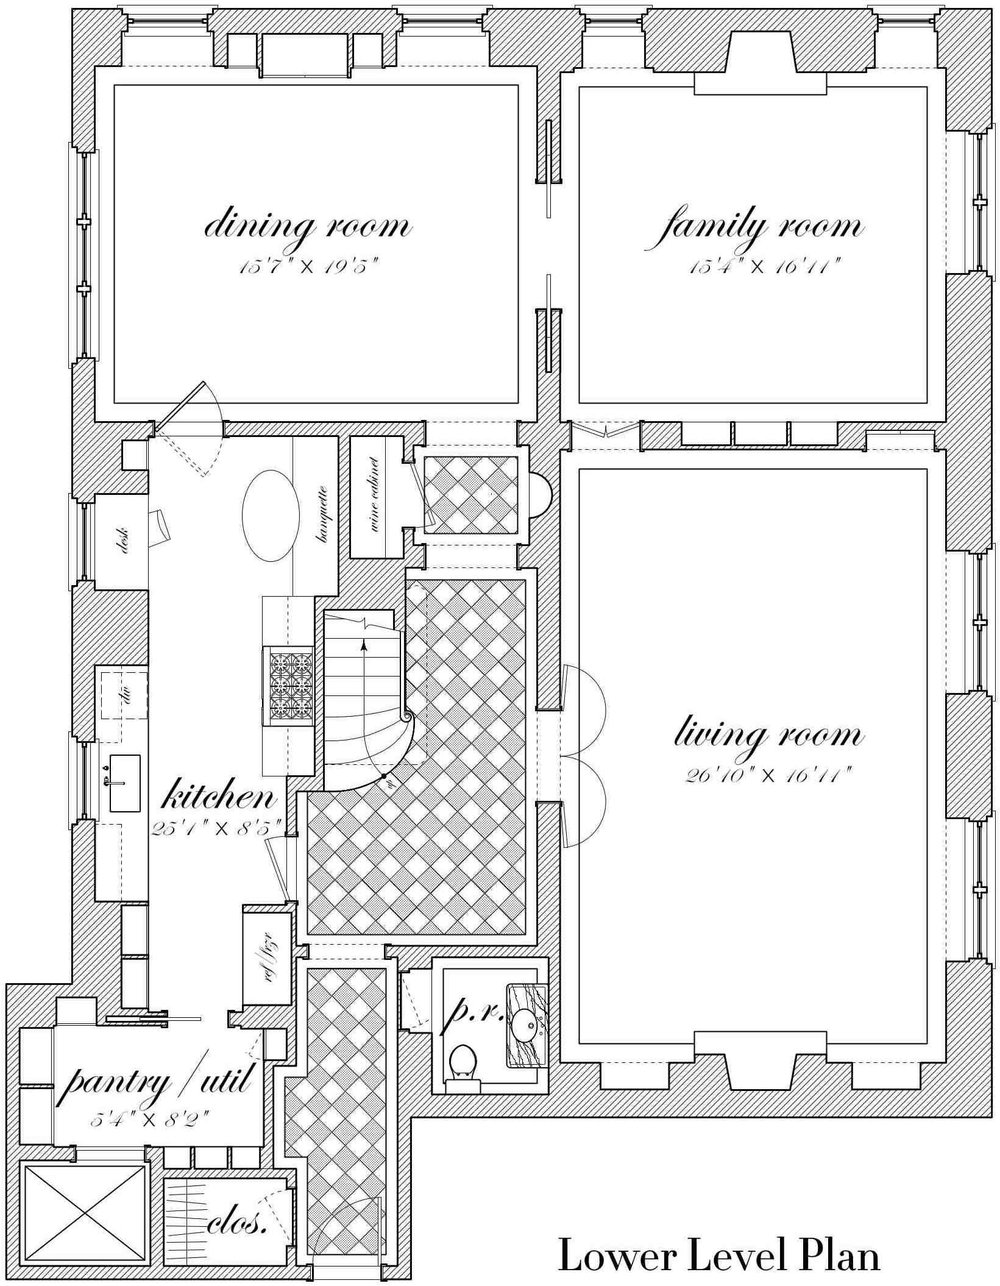 1 925 PARK AV LOWER LEVEL PLAN PHOTO WEBSITE 2018.jpg